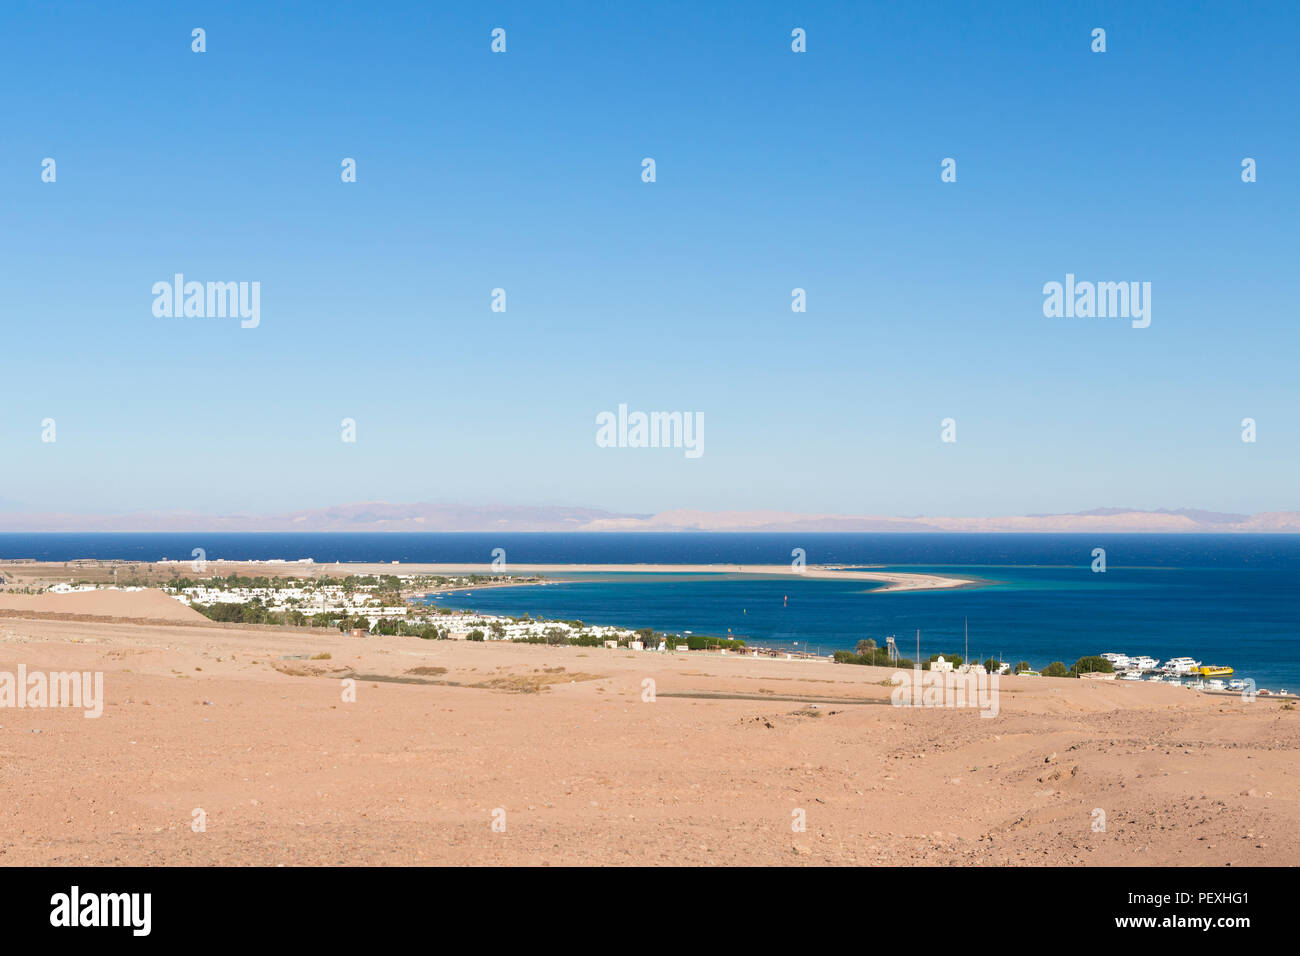 View of the Laguna Bay in Dahab, Egypt - Stock Image